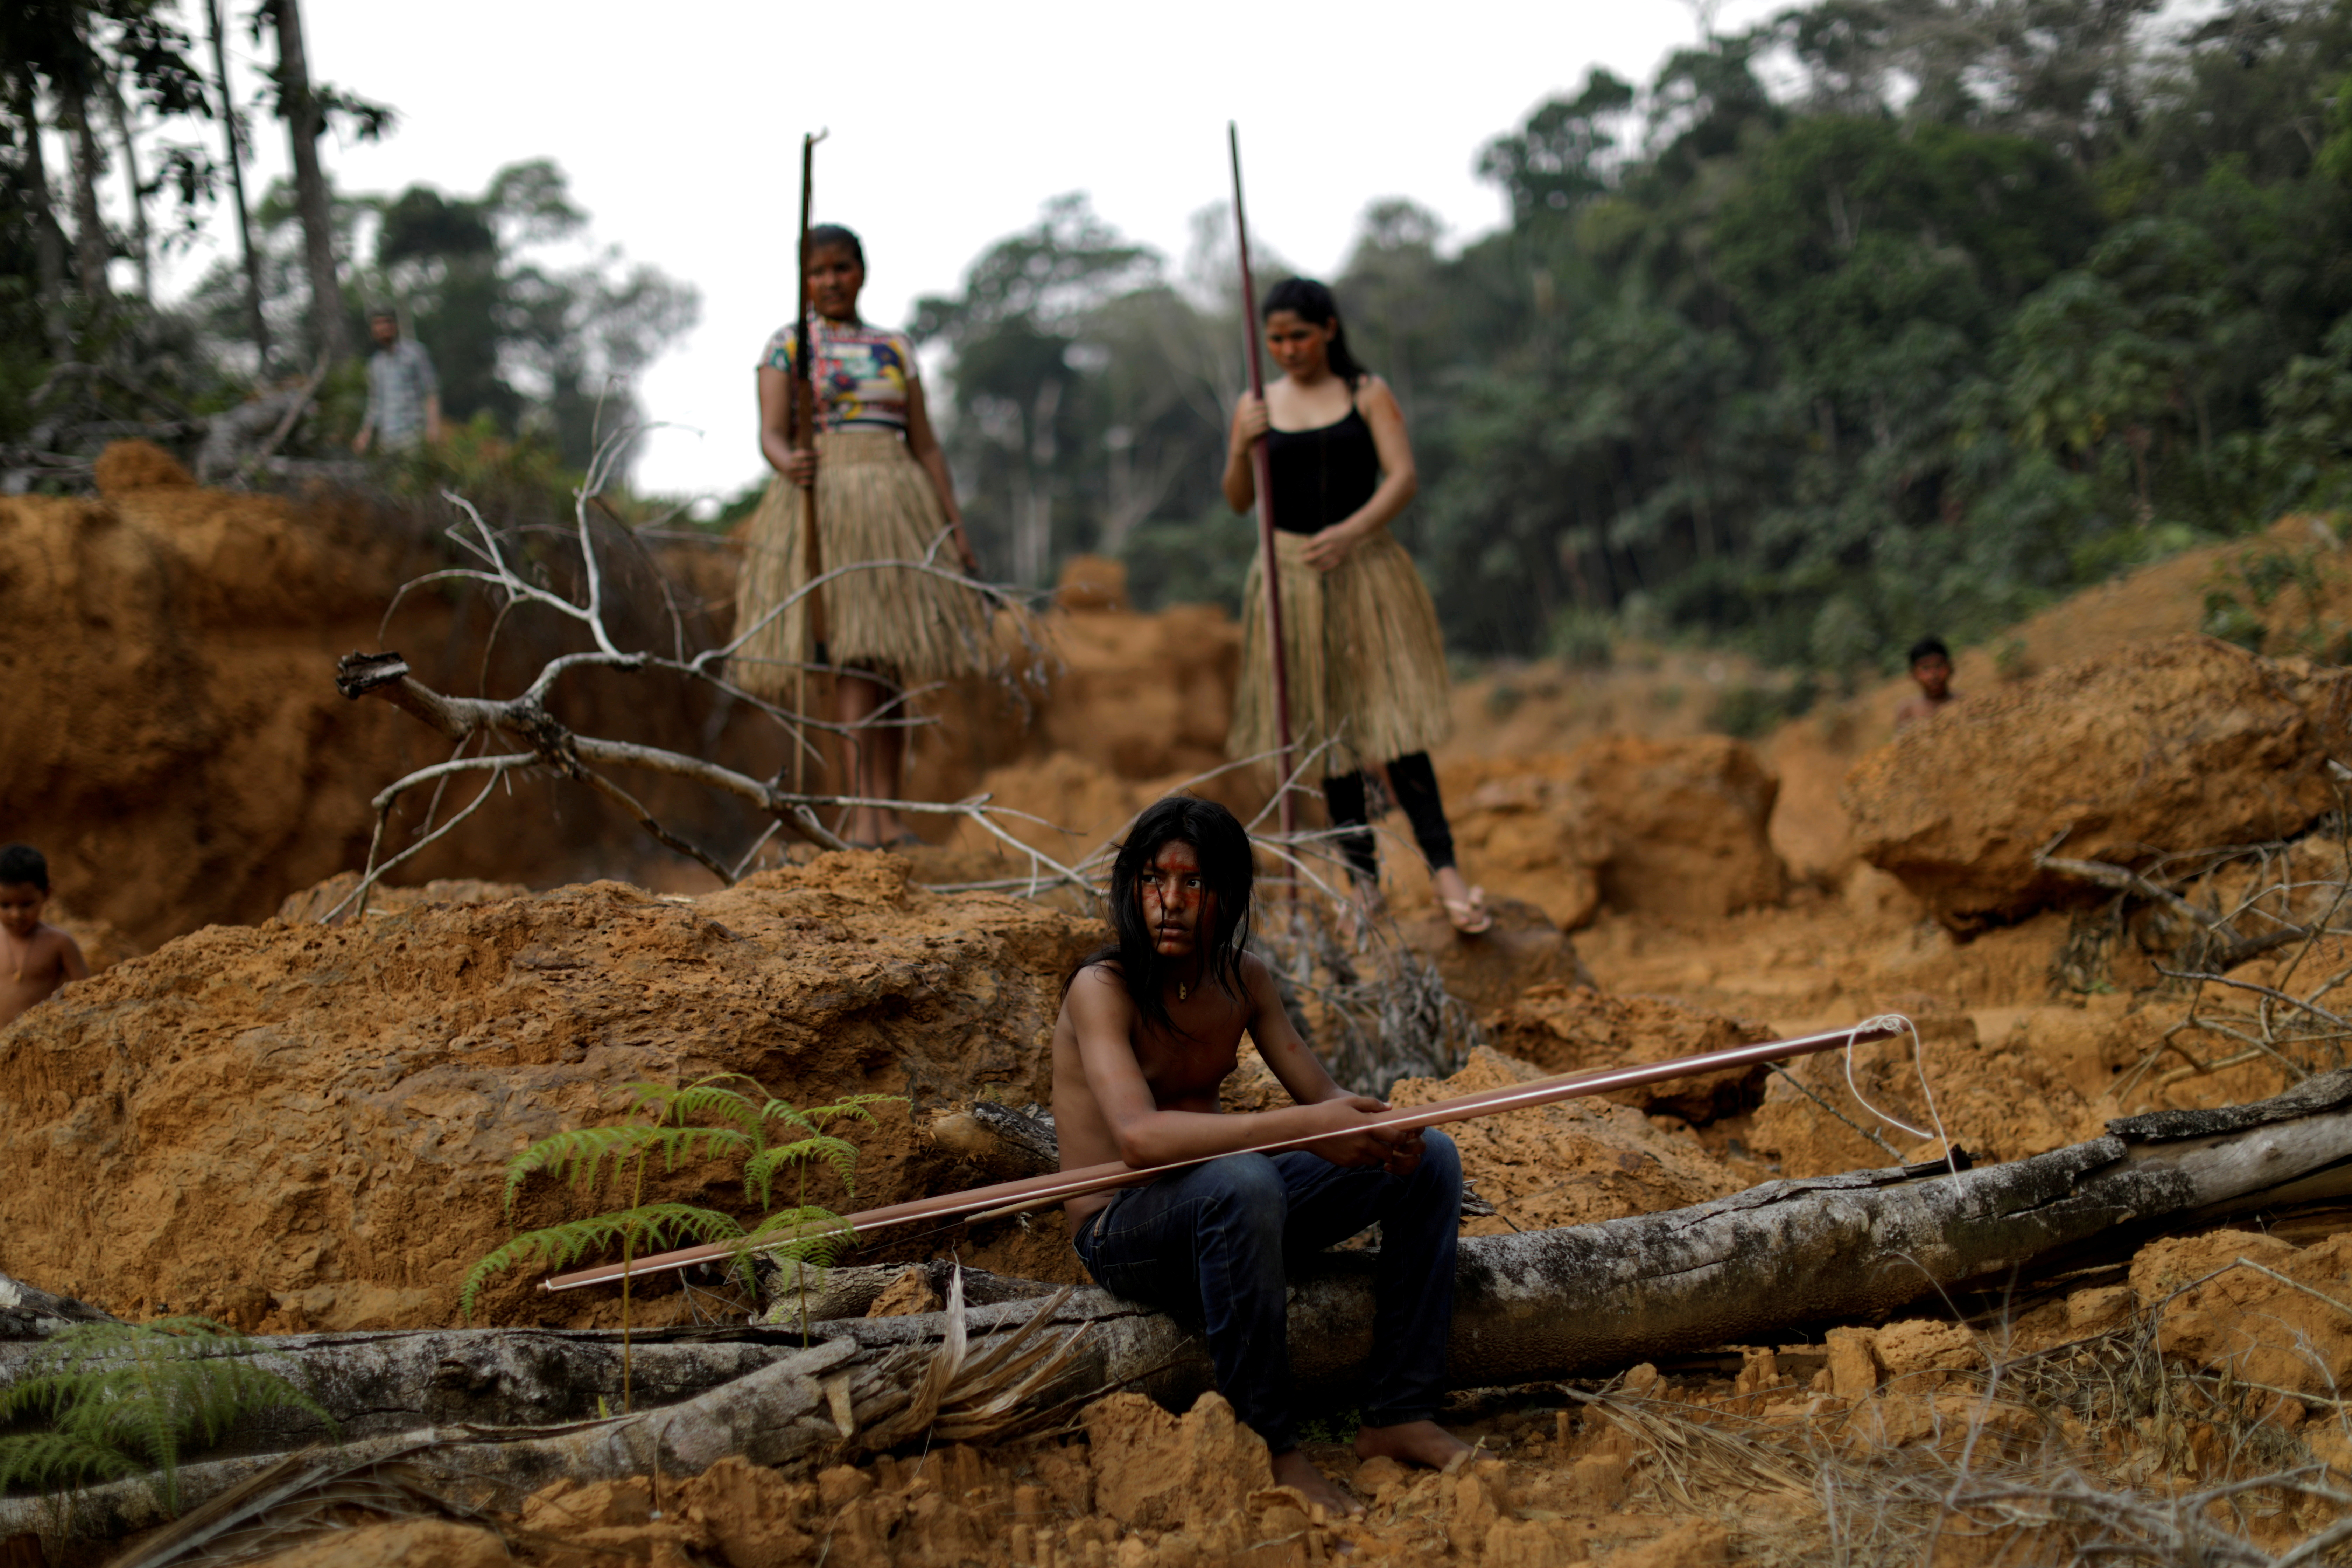 Indigenous people from the Mura tribe show a deforested area in unmarked indigenous lands, inside the Amazon rainforest near Humaita, Amazonas State, Brazil August 20, 2019. REUTERS/Ueslei Marcelino